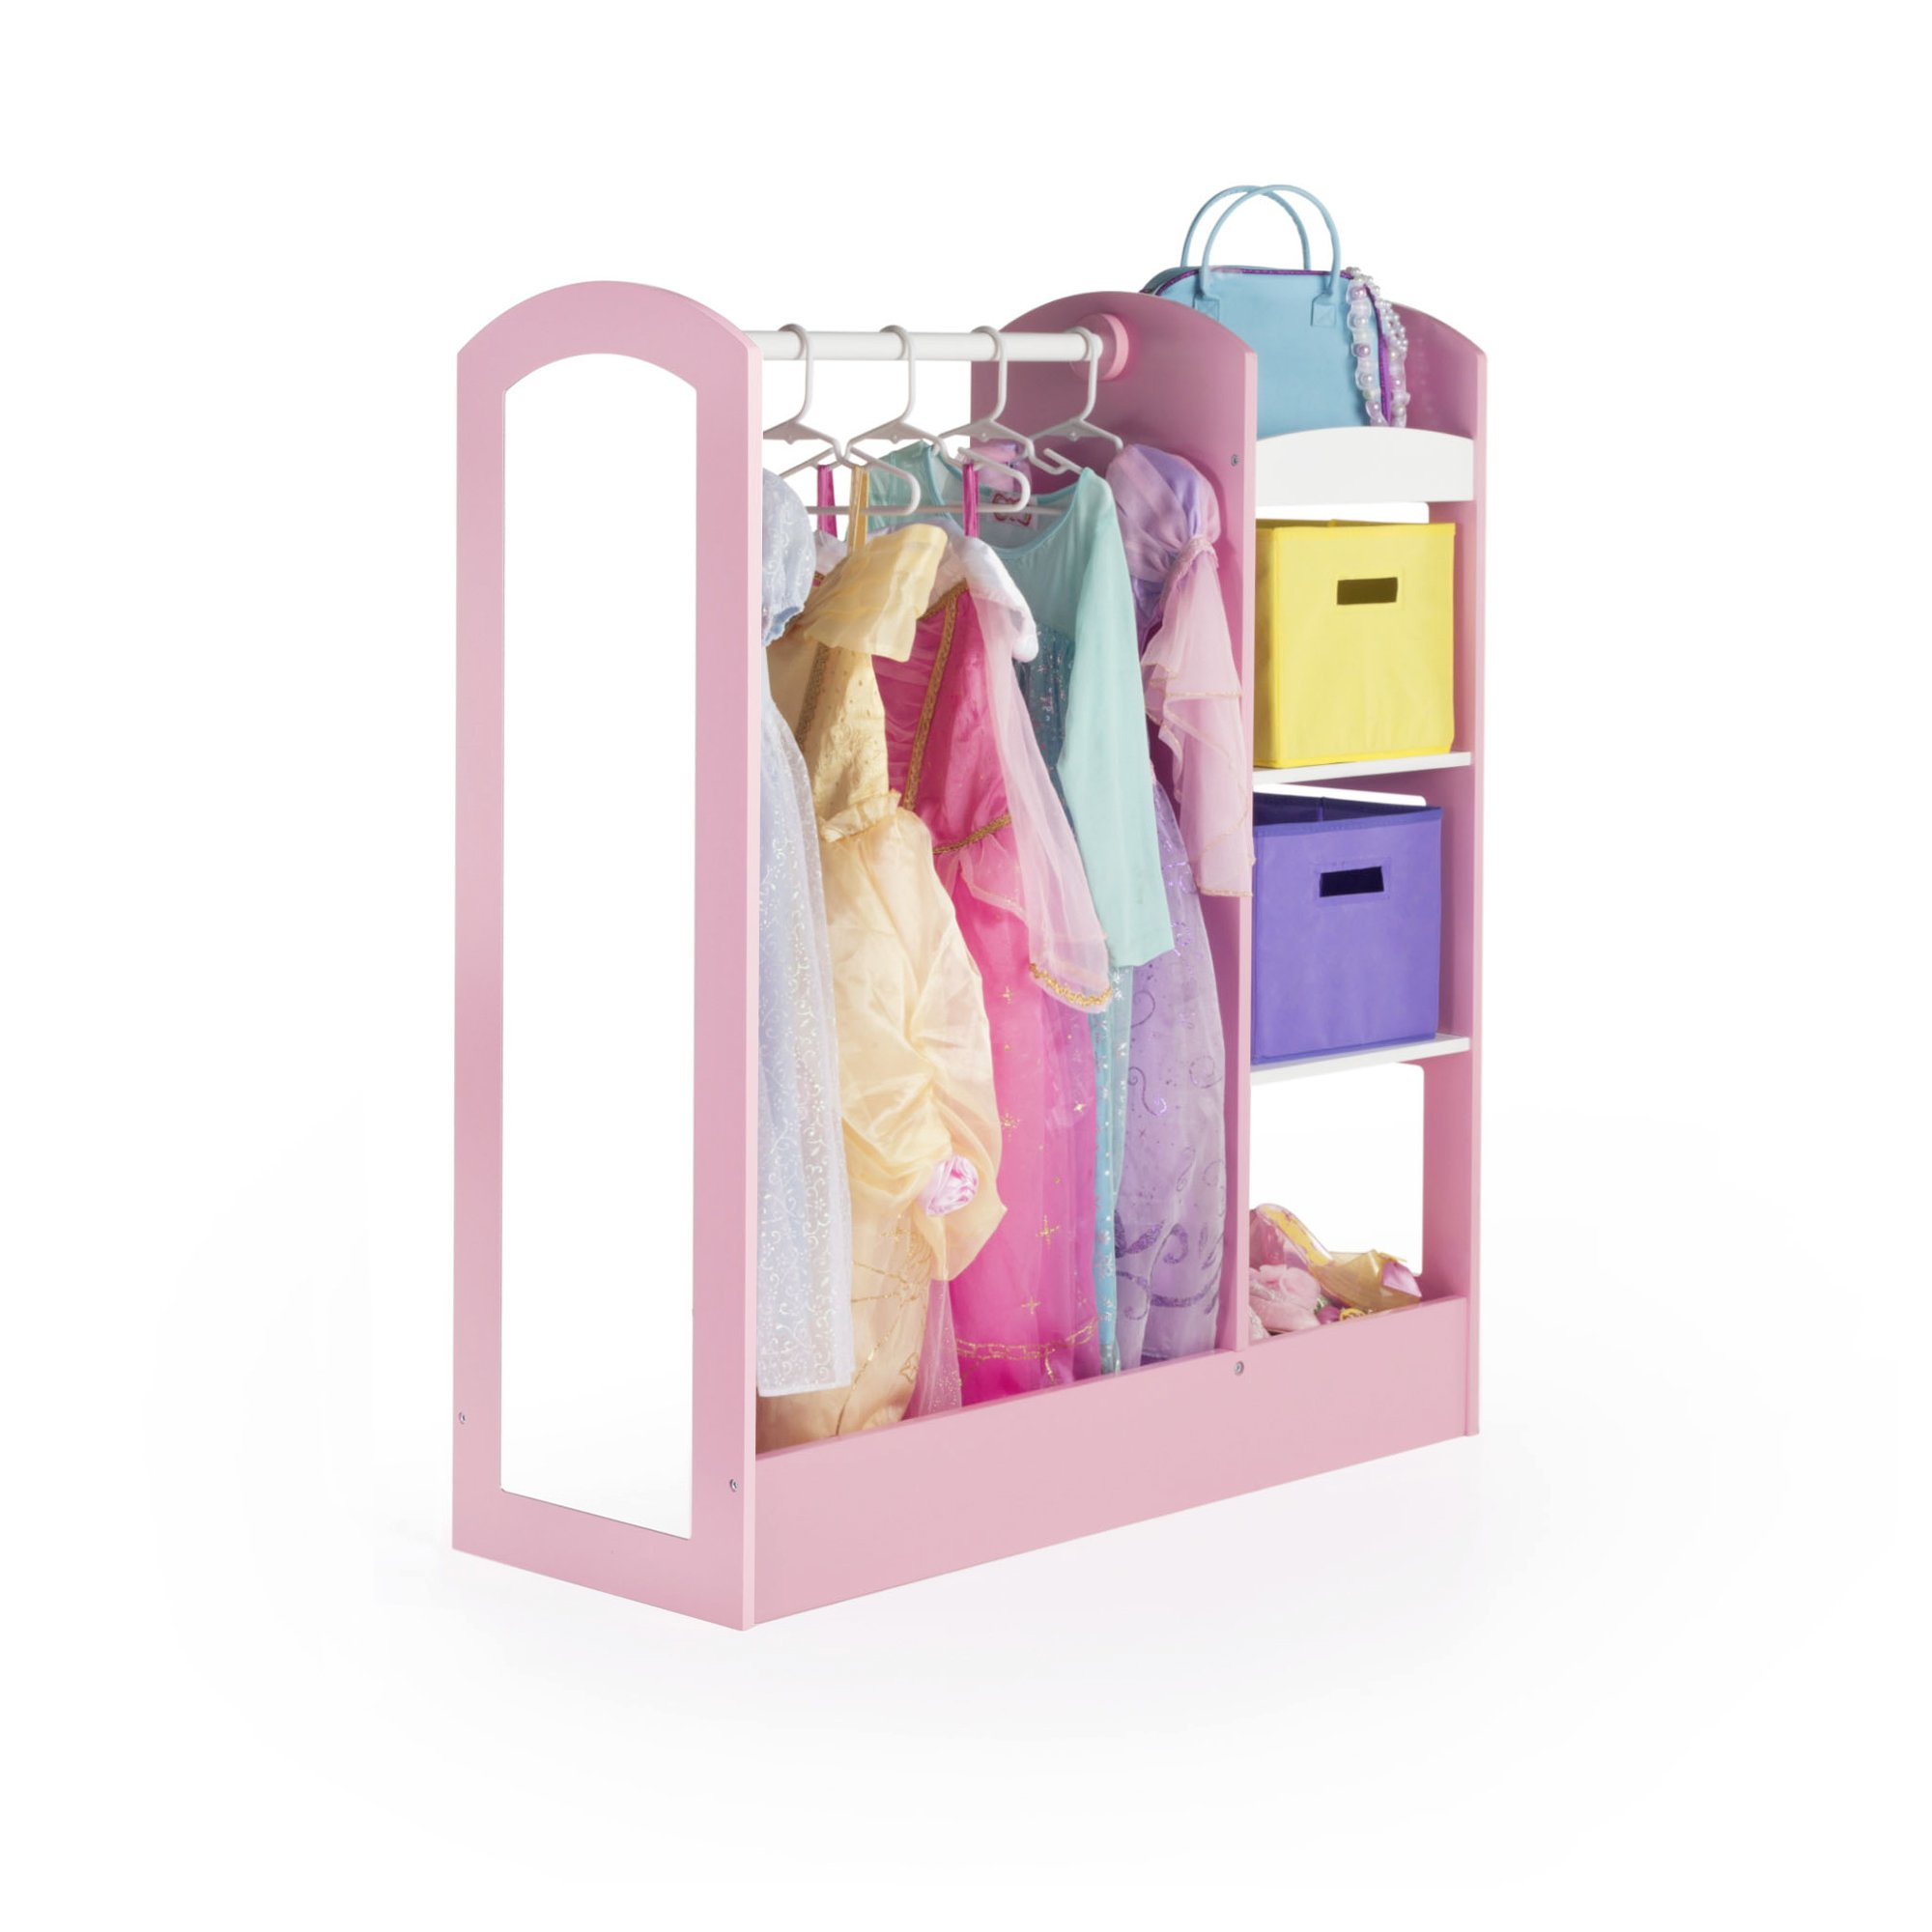 Guidecraft See and Store Dress-up Center – Pastel: Toddlers' Clothing Rack Wardrobe with Mirror & Shelves, Cubby Armoire with Bottom Tray - Kids Bedroom Furniture